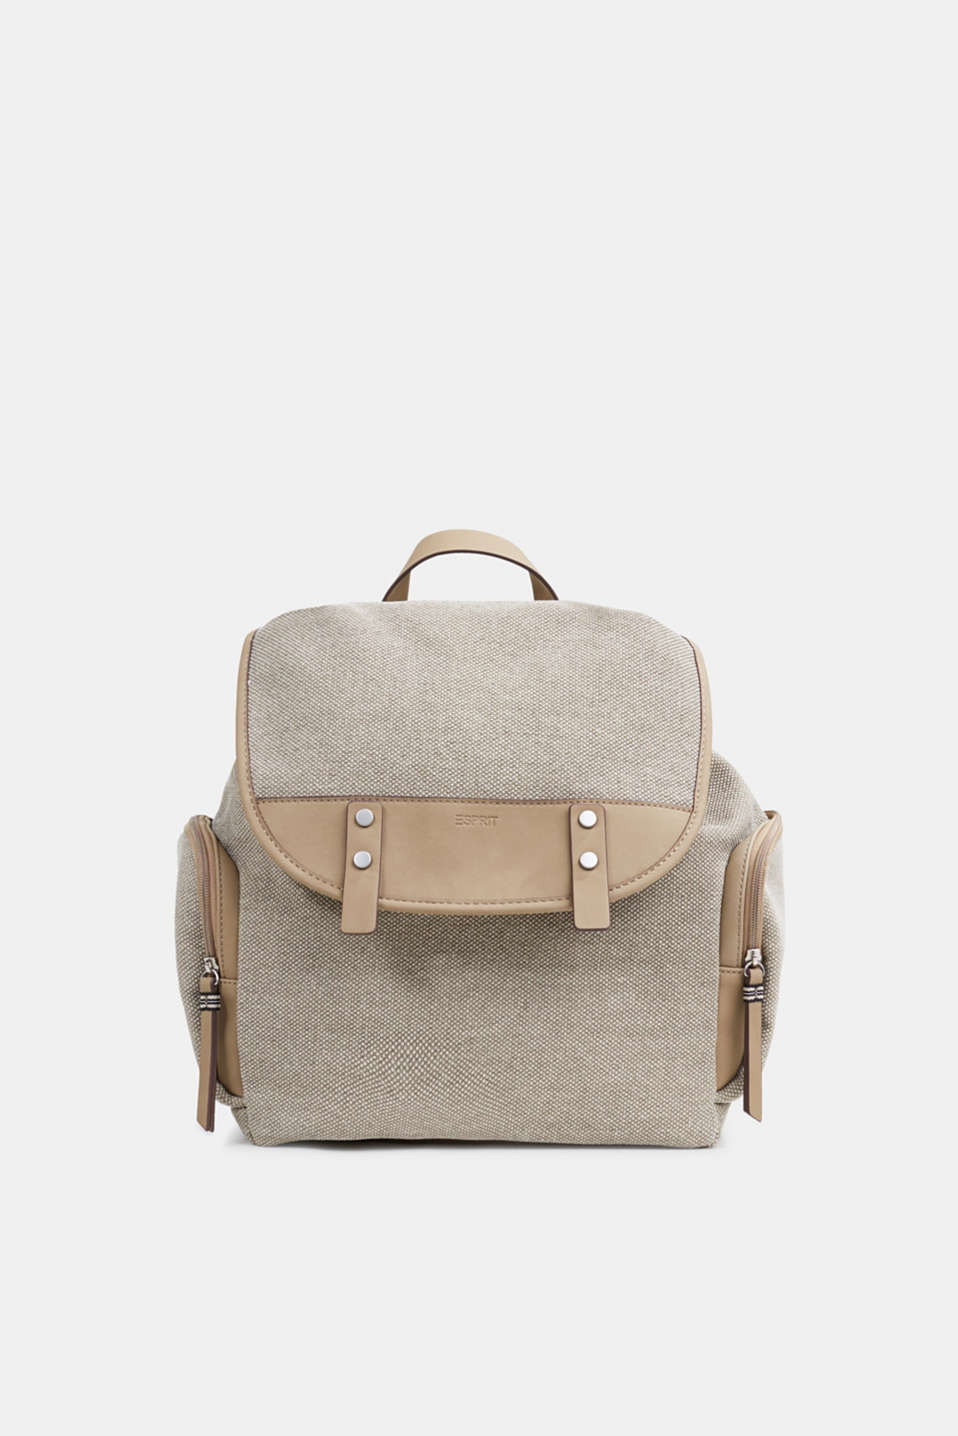 Esprit - Canvas rucksack, 100% cotton